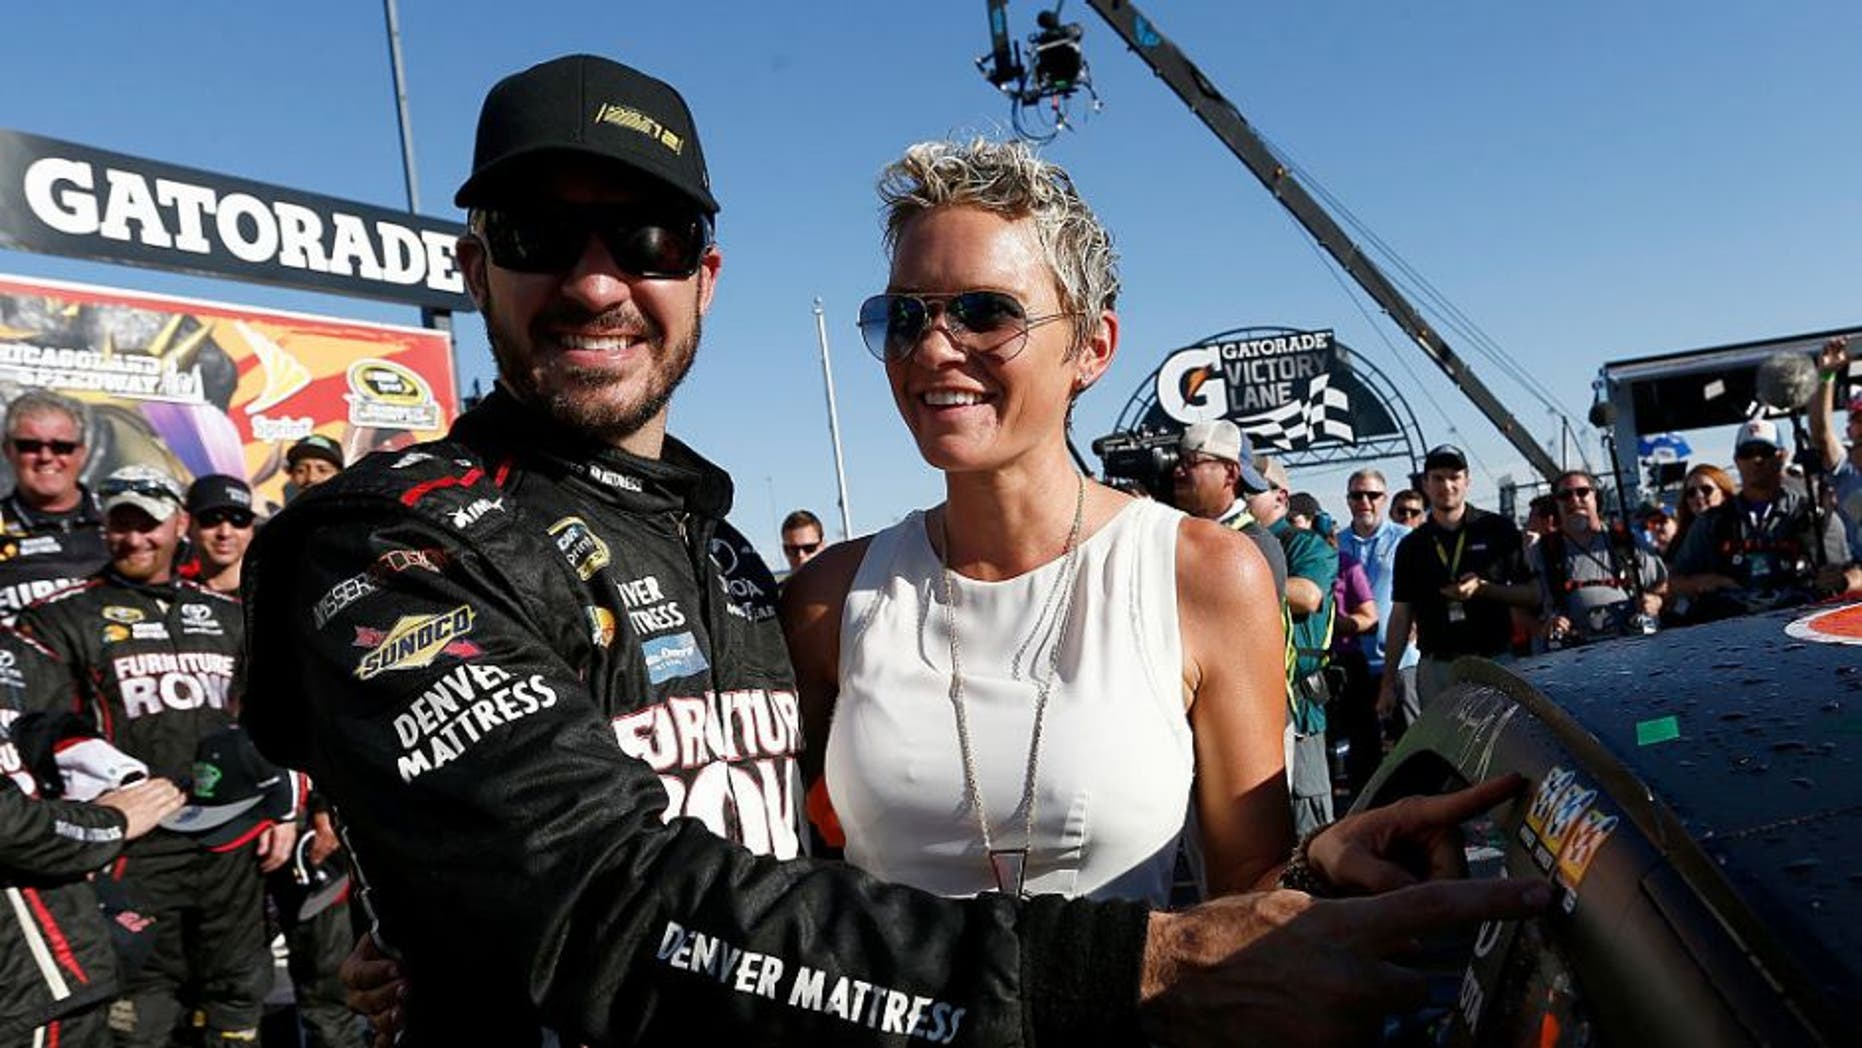 JOLIET, IL - SEPTEMBER 18: Martin Truex Jr, driver of the #78 Furniture Row/Denver Mattress Toyota, and his wife Sherry Pollex celebrate in Victory Lane during the NASCAR Sprint Cup Series Teenage Mutant Ninja Turtles 400 at Chicagoland Speedway on September 18, 2016 in Joliet, Illinois. (Photo by Jeff Zelevansky/NASCAR via Getty Images)